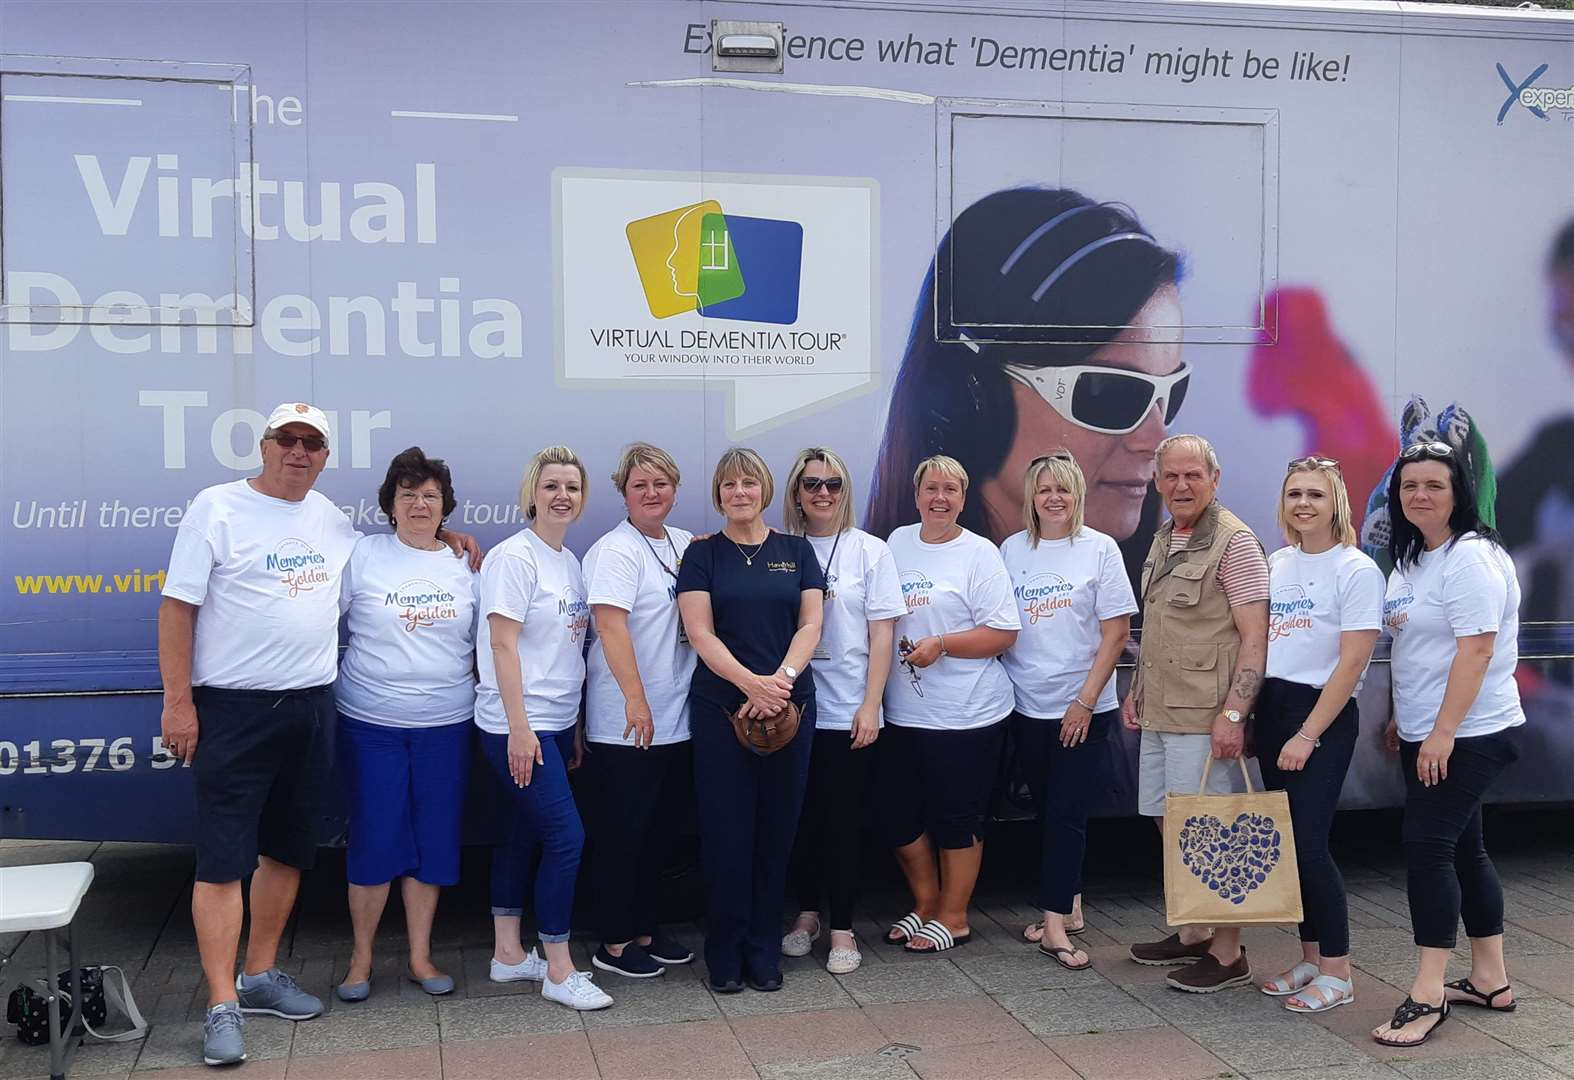 Dementia awareness event provides valuable insight